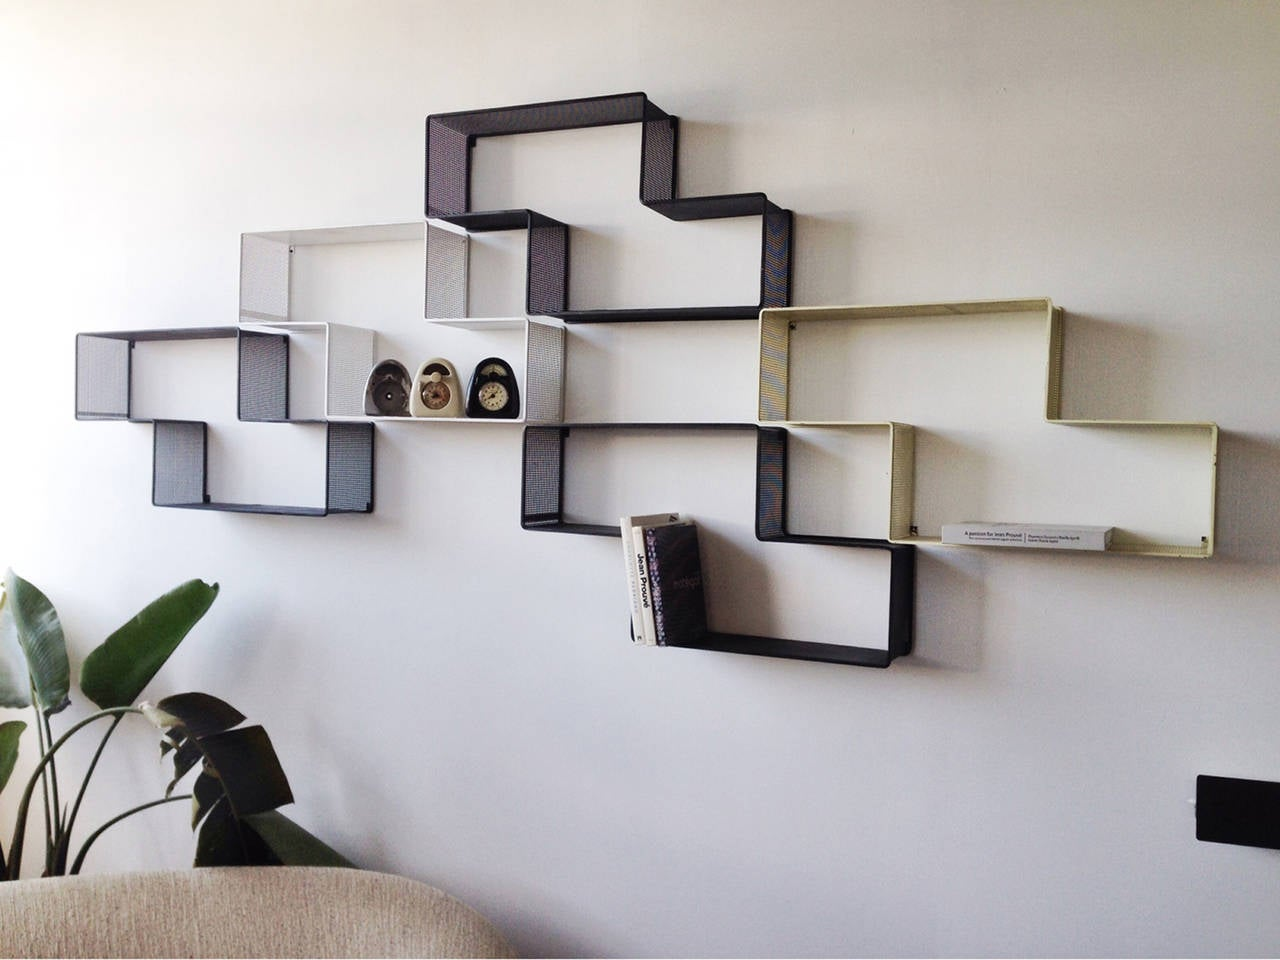 Set of five reconfigurable, perforated steel shelves in black, white, and pale yellow by Hungarian/French designer and material artist Mathieu Matégot. Manufactured by Atelier Matégot, France.